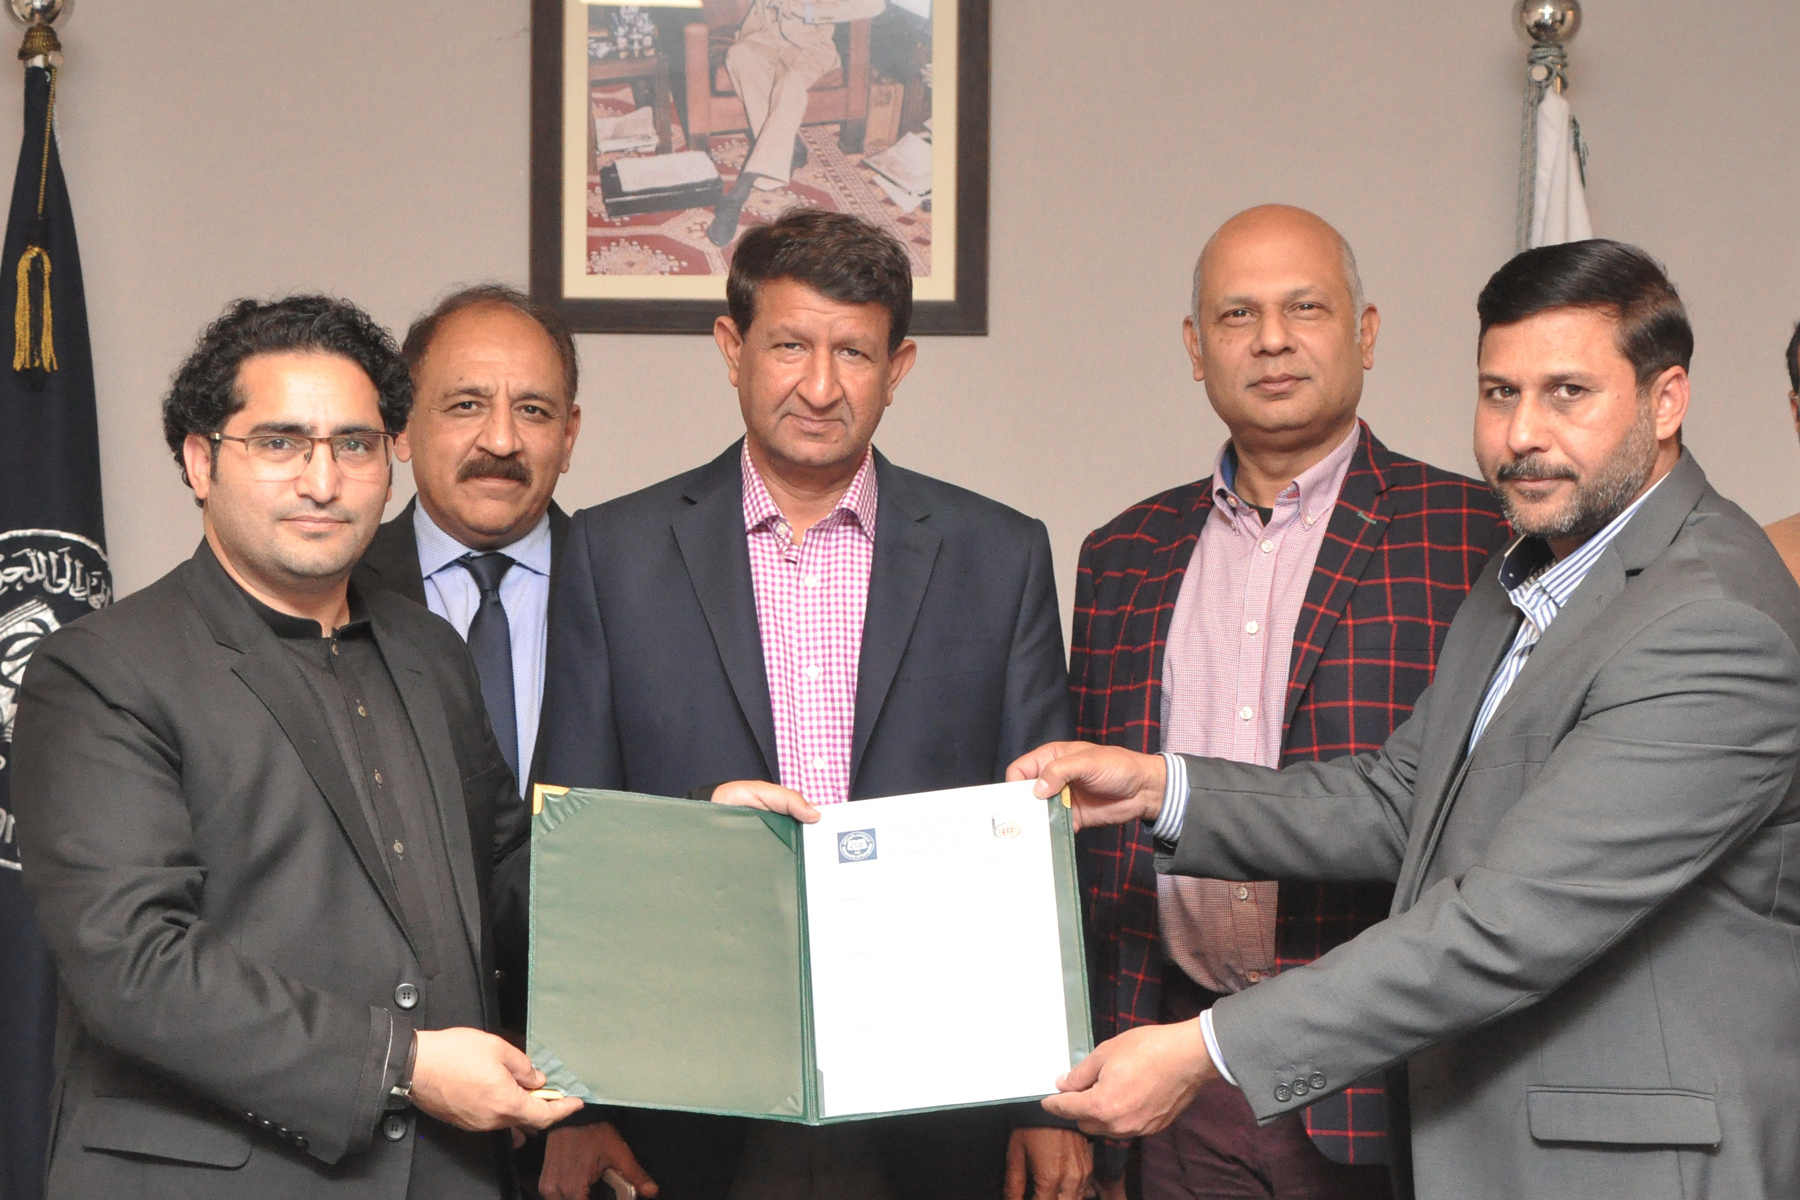 MoU signed with Indus Broadcasting and Corporation to help students hone their skills